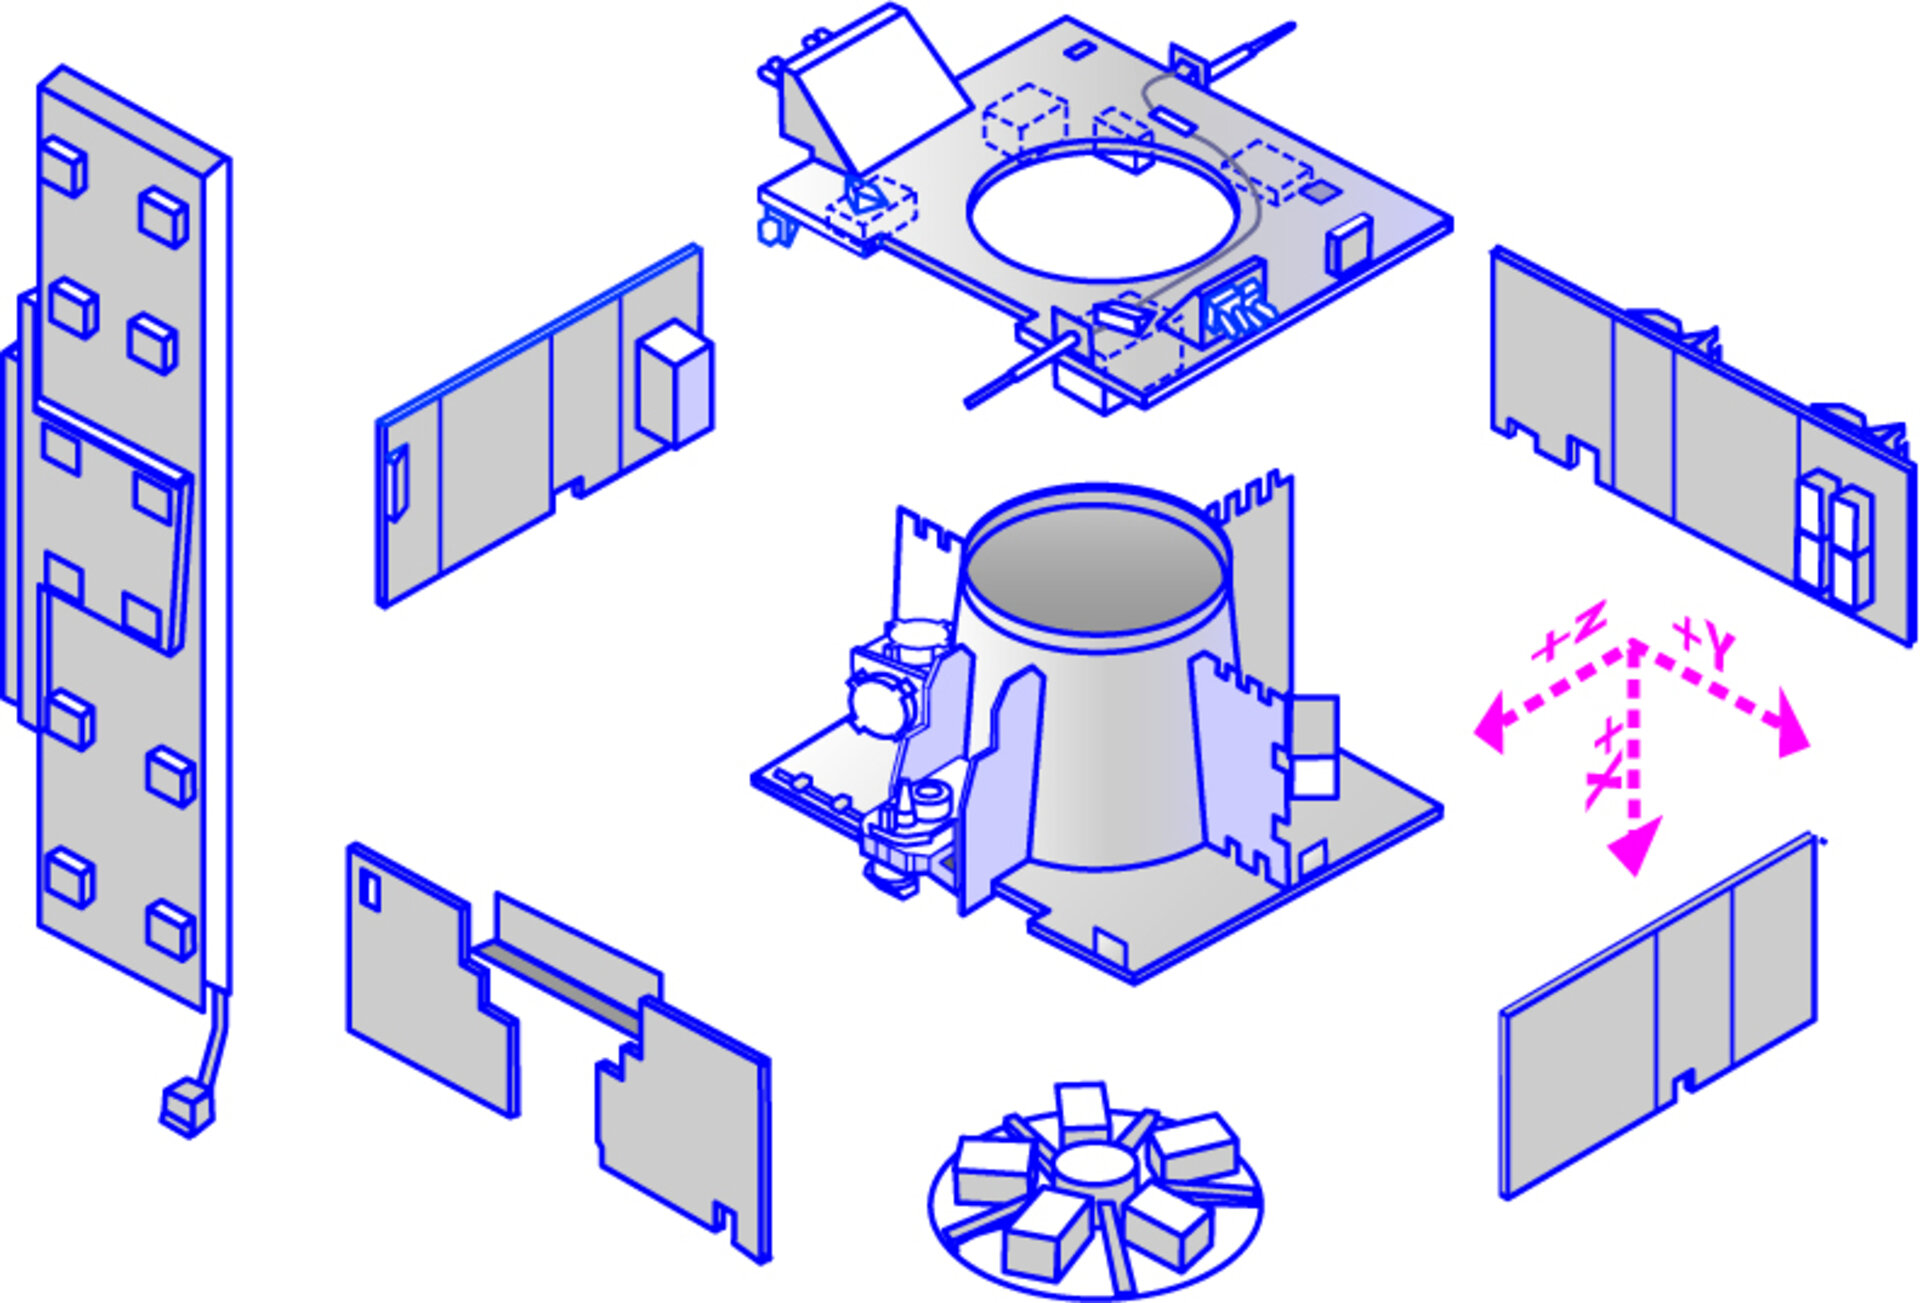 Exploded view of the main subsystems (view 2)